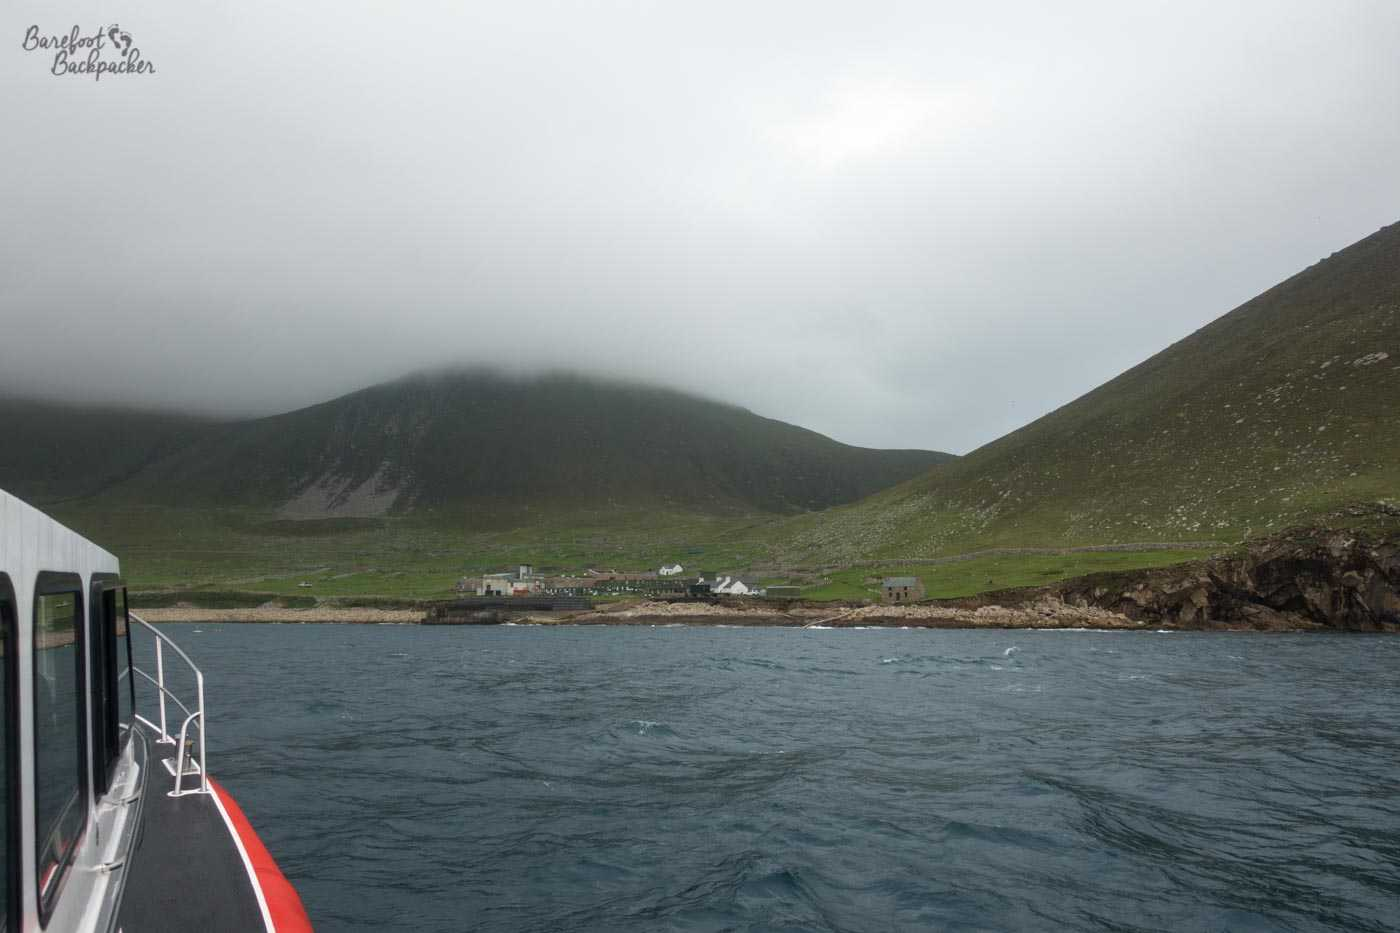 The first view of the harbour on Hirta, as seen from the boat. The small collection of houses look very exposed, with open country around and large hills looming in the background, topped with cloud/mist.